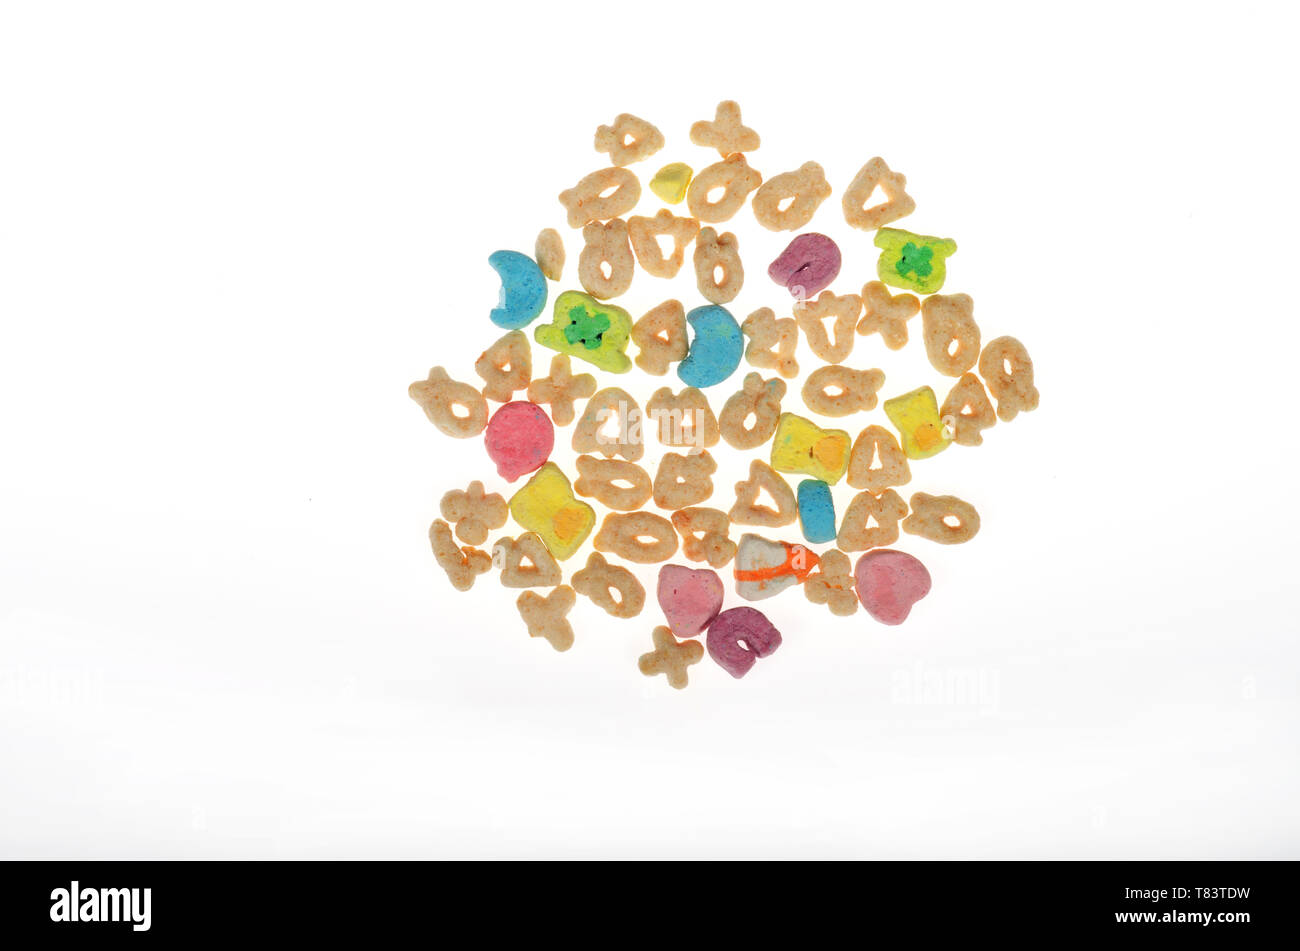 Lucky Charms cereal from General Mills on white - Stock Image